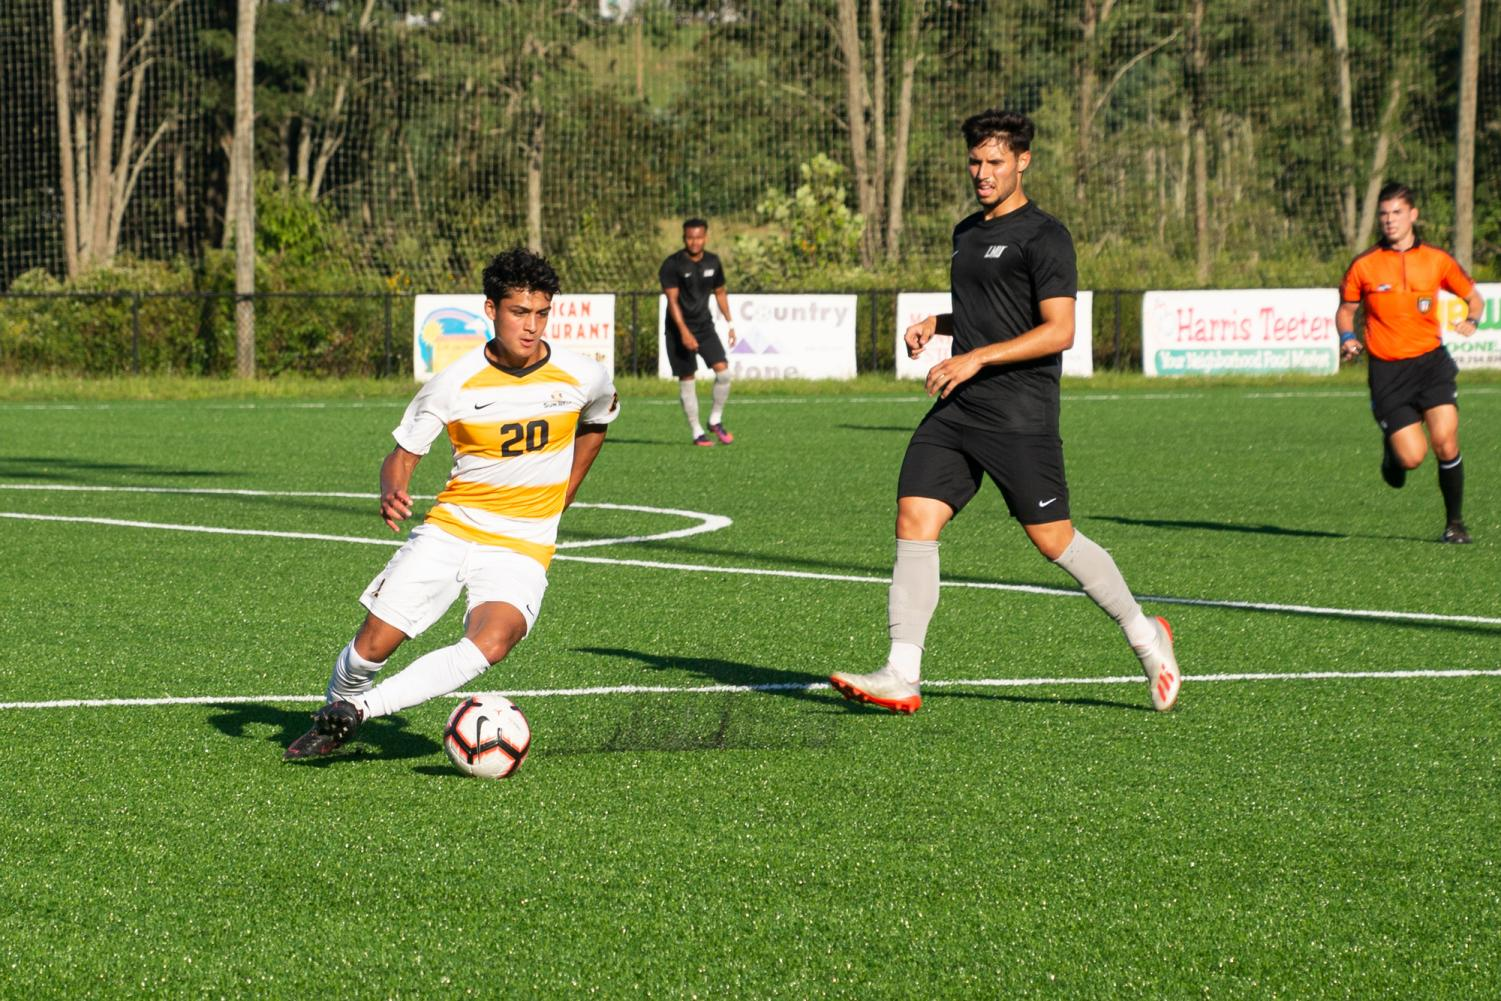 Sophomore midfielder Alex Hernandez in action in App State's opening scrimmage of the season on August 16. Hernandez scored three goals for the Mountaineers a season ago.